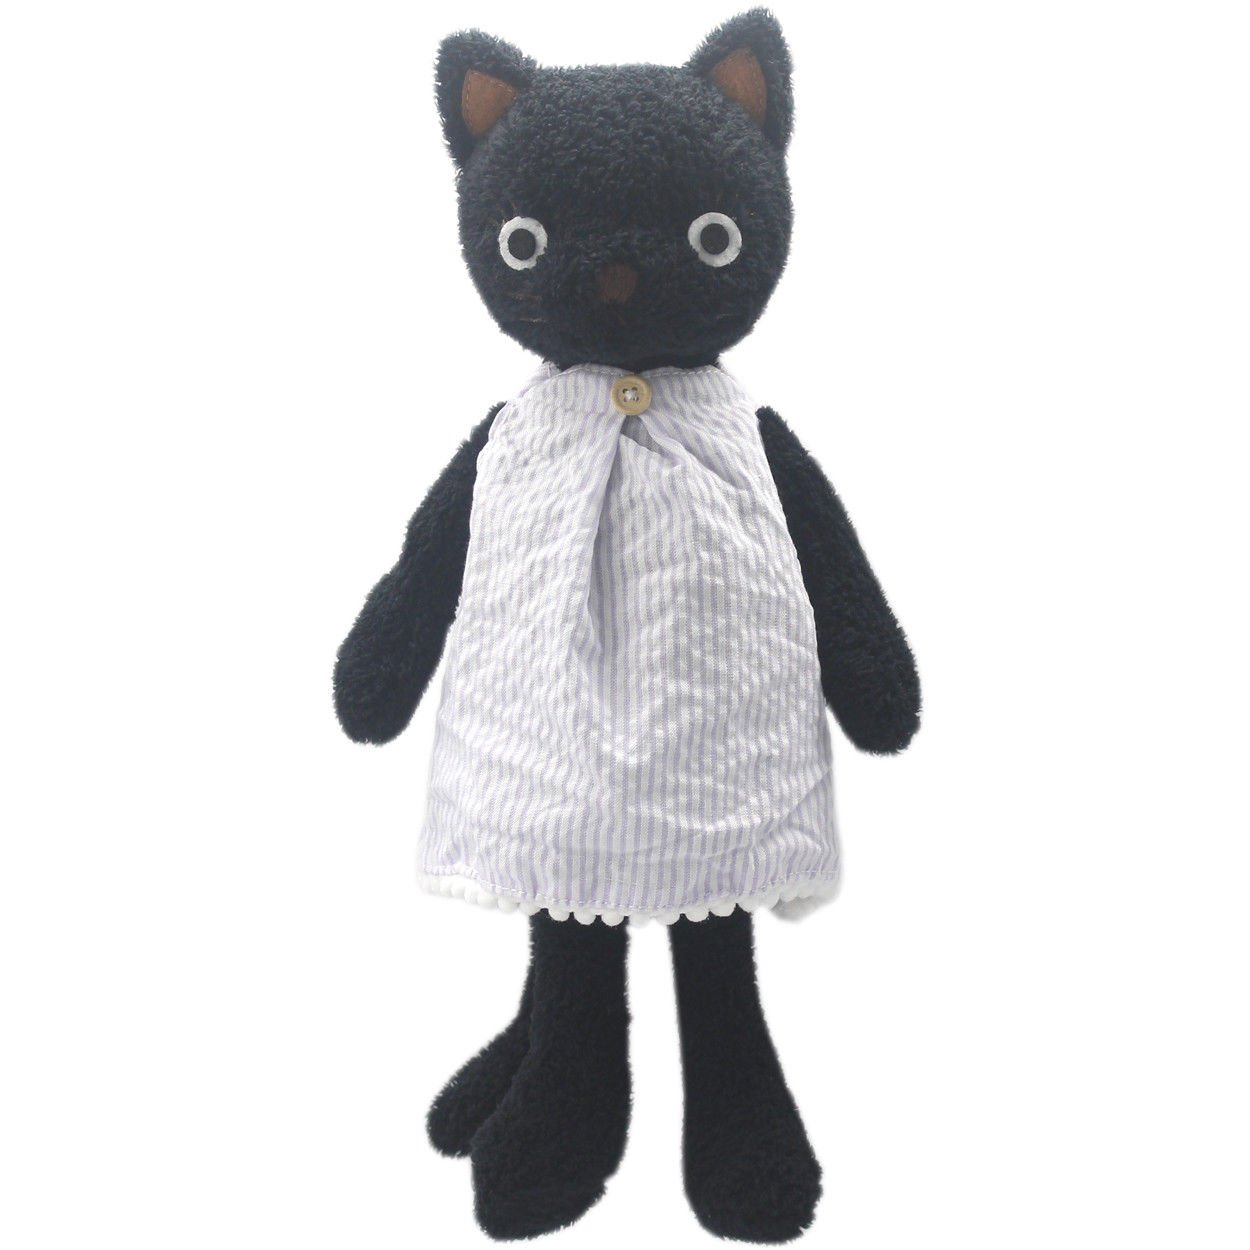 JIARU Stuffed Animals Toys Cat Plush Soft Adorable Dressed Dolls